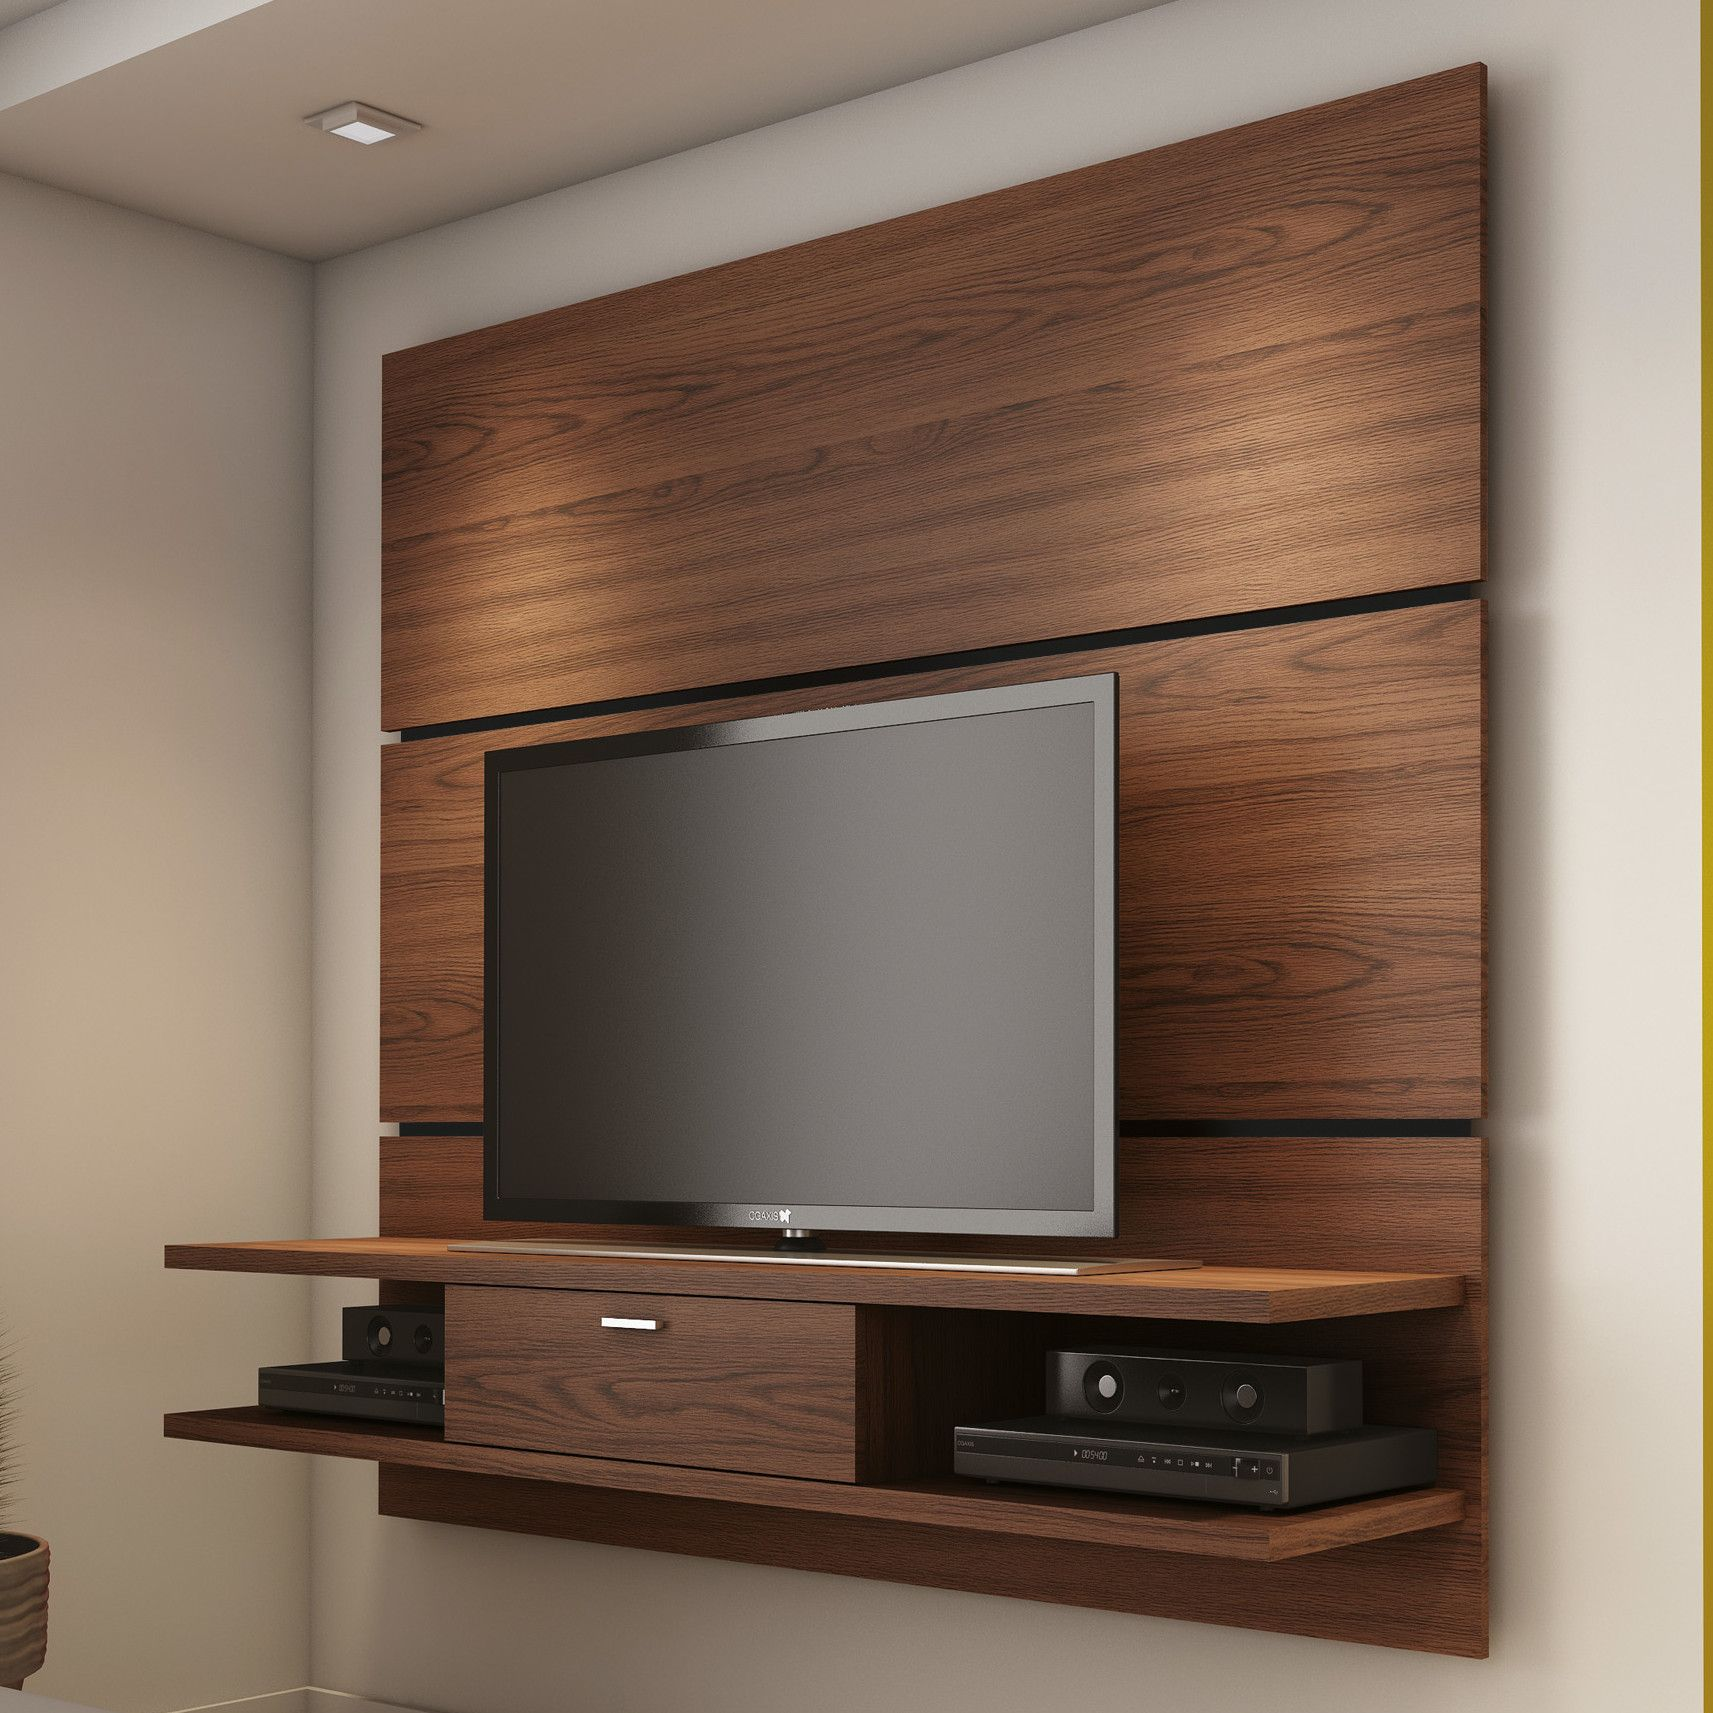 Wall Mounted Tv Cabinet For Bedroom